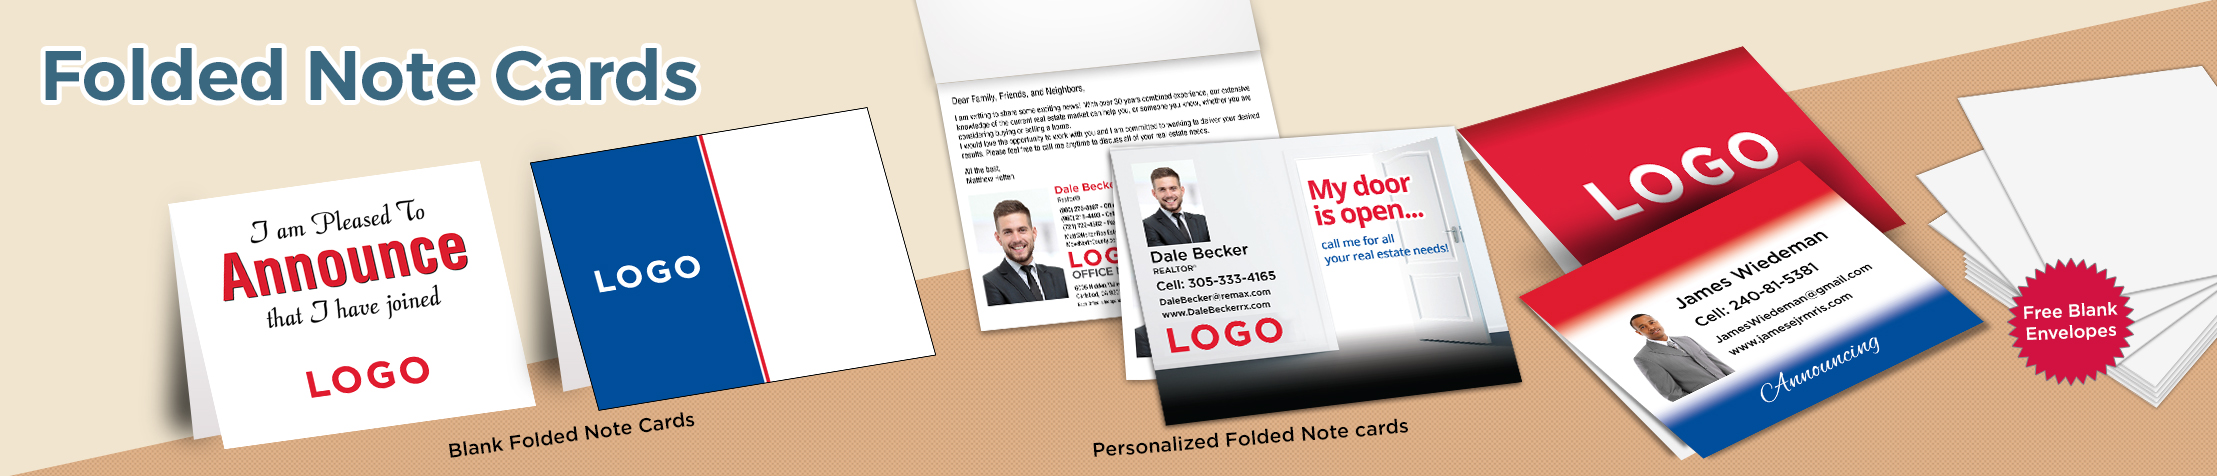 RE/MAX Real Estate Folded Note Cards - RE/MAX stationery | BestPrintBuy.com